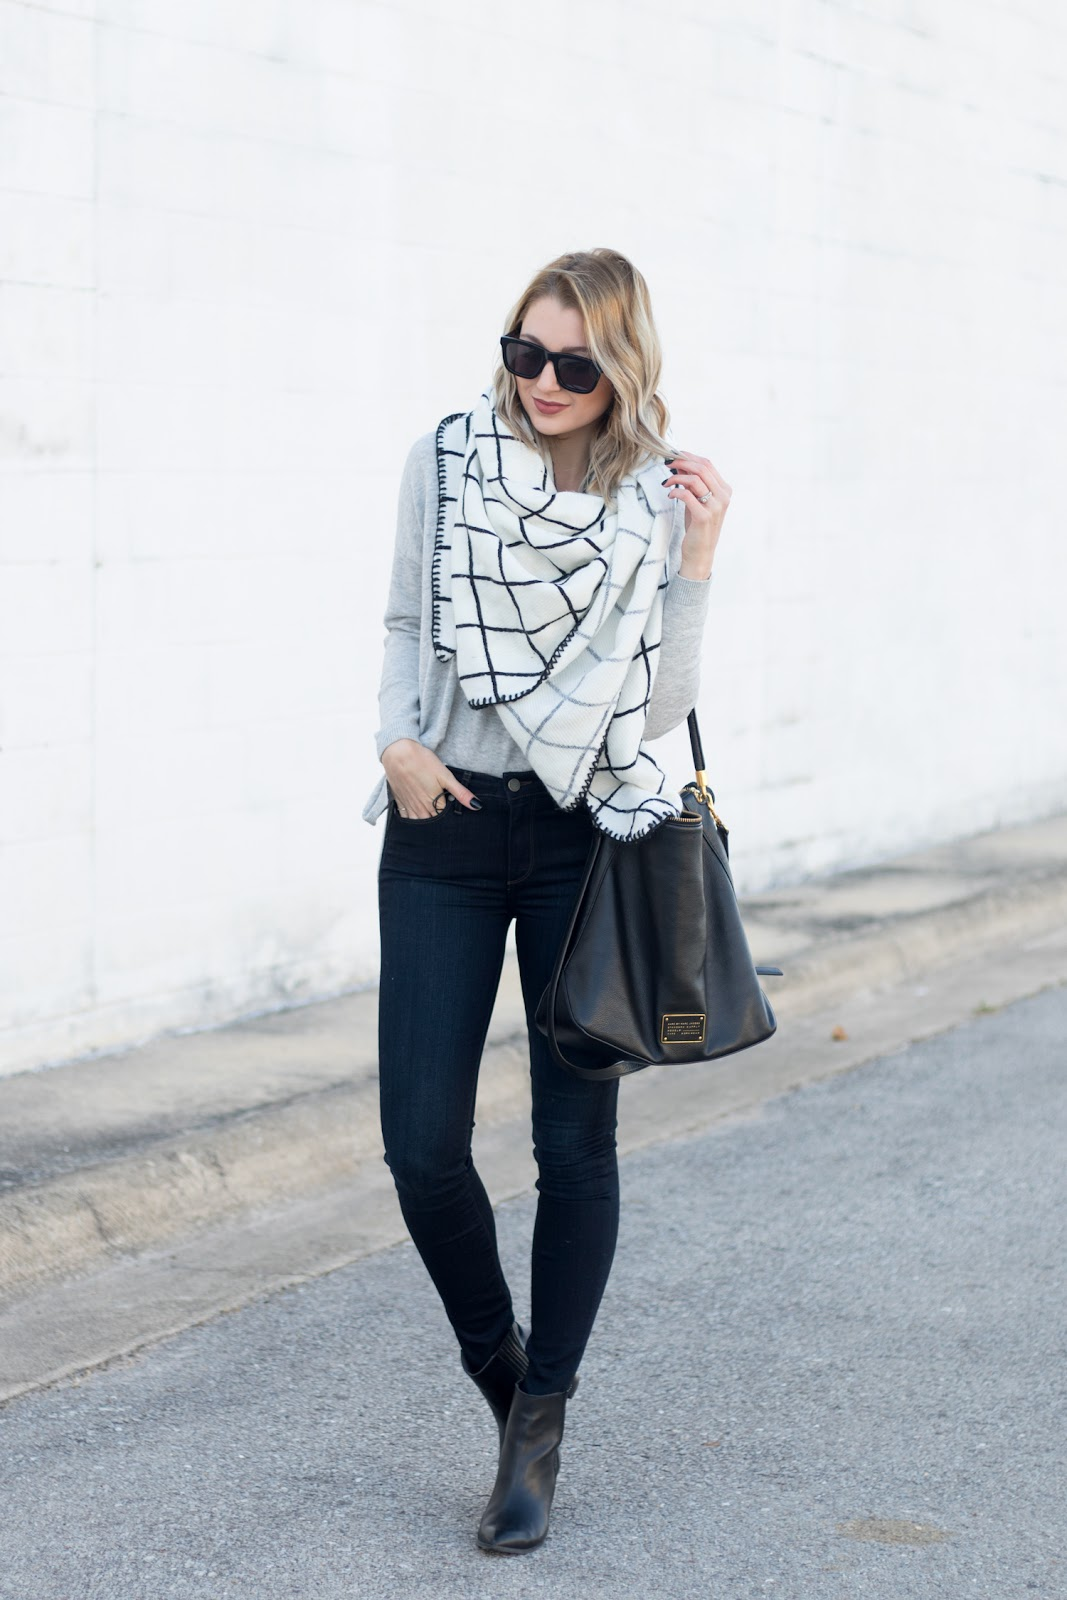 Gray, black and white winter outfit